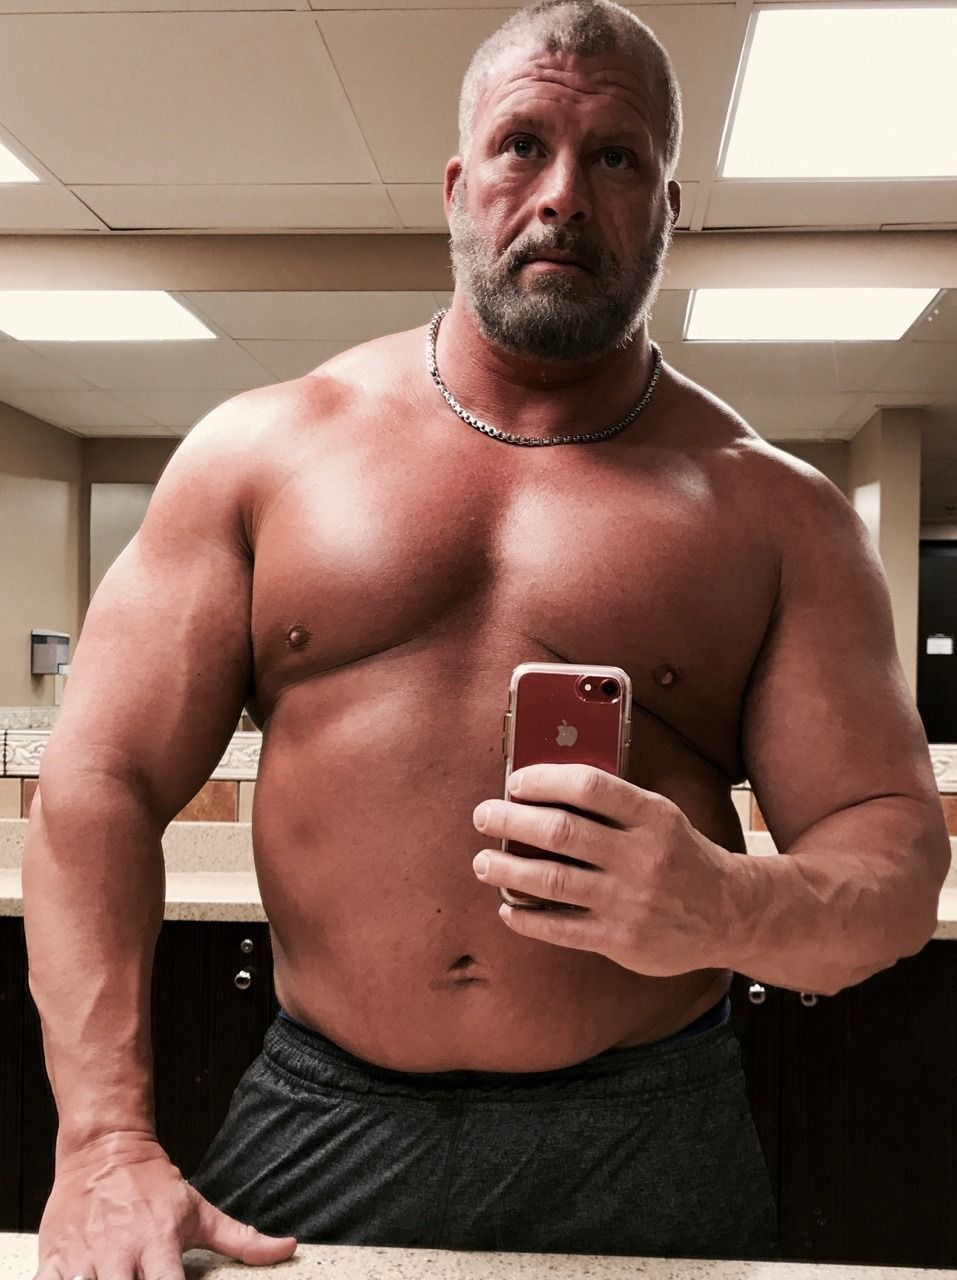 Muscle Bear Hairy Chest Guy Pictures Hot Dads Daddy Issues Daddy